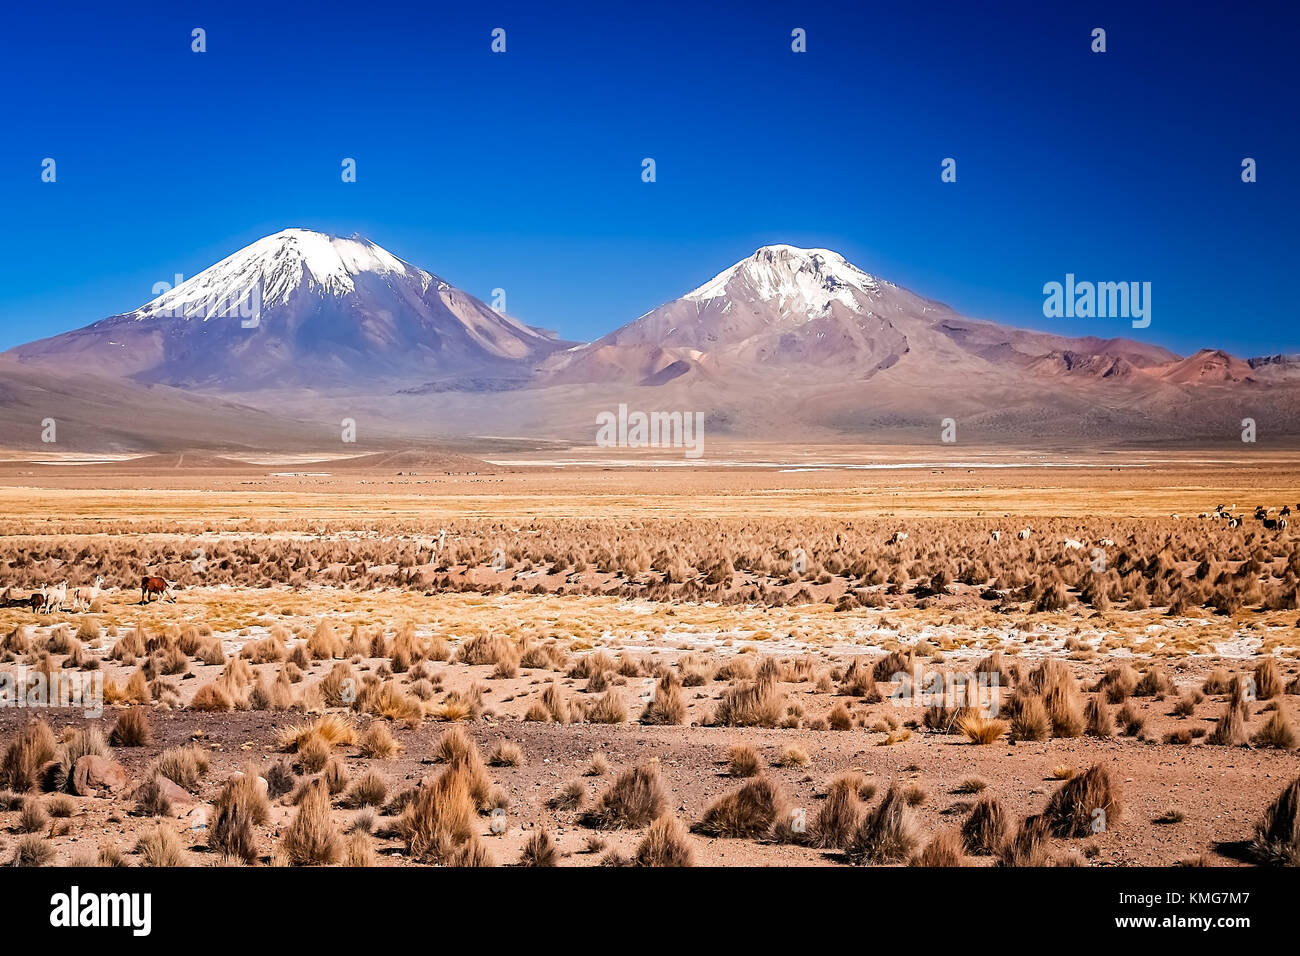 Enormous volcano Nevado Sajama and Parinacota volcanoes located in National Parks in Chile and Bolivia - Stock Image